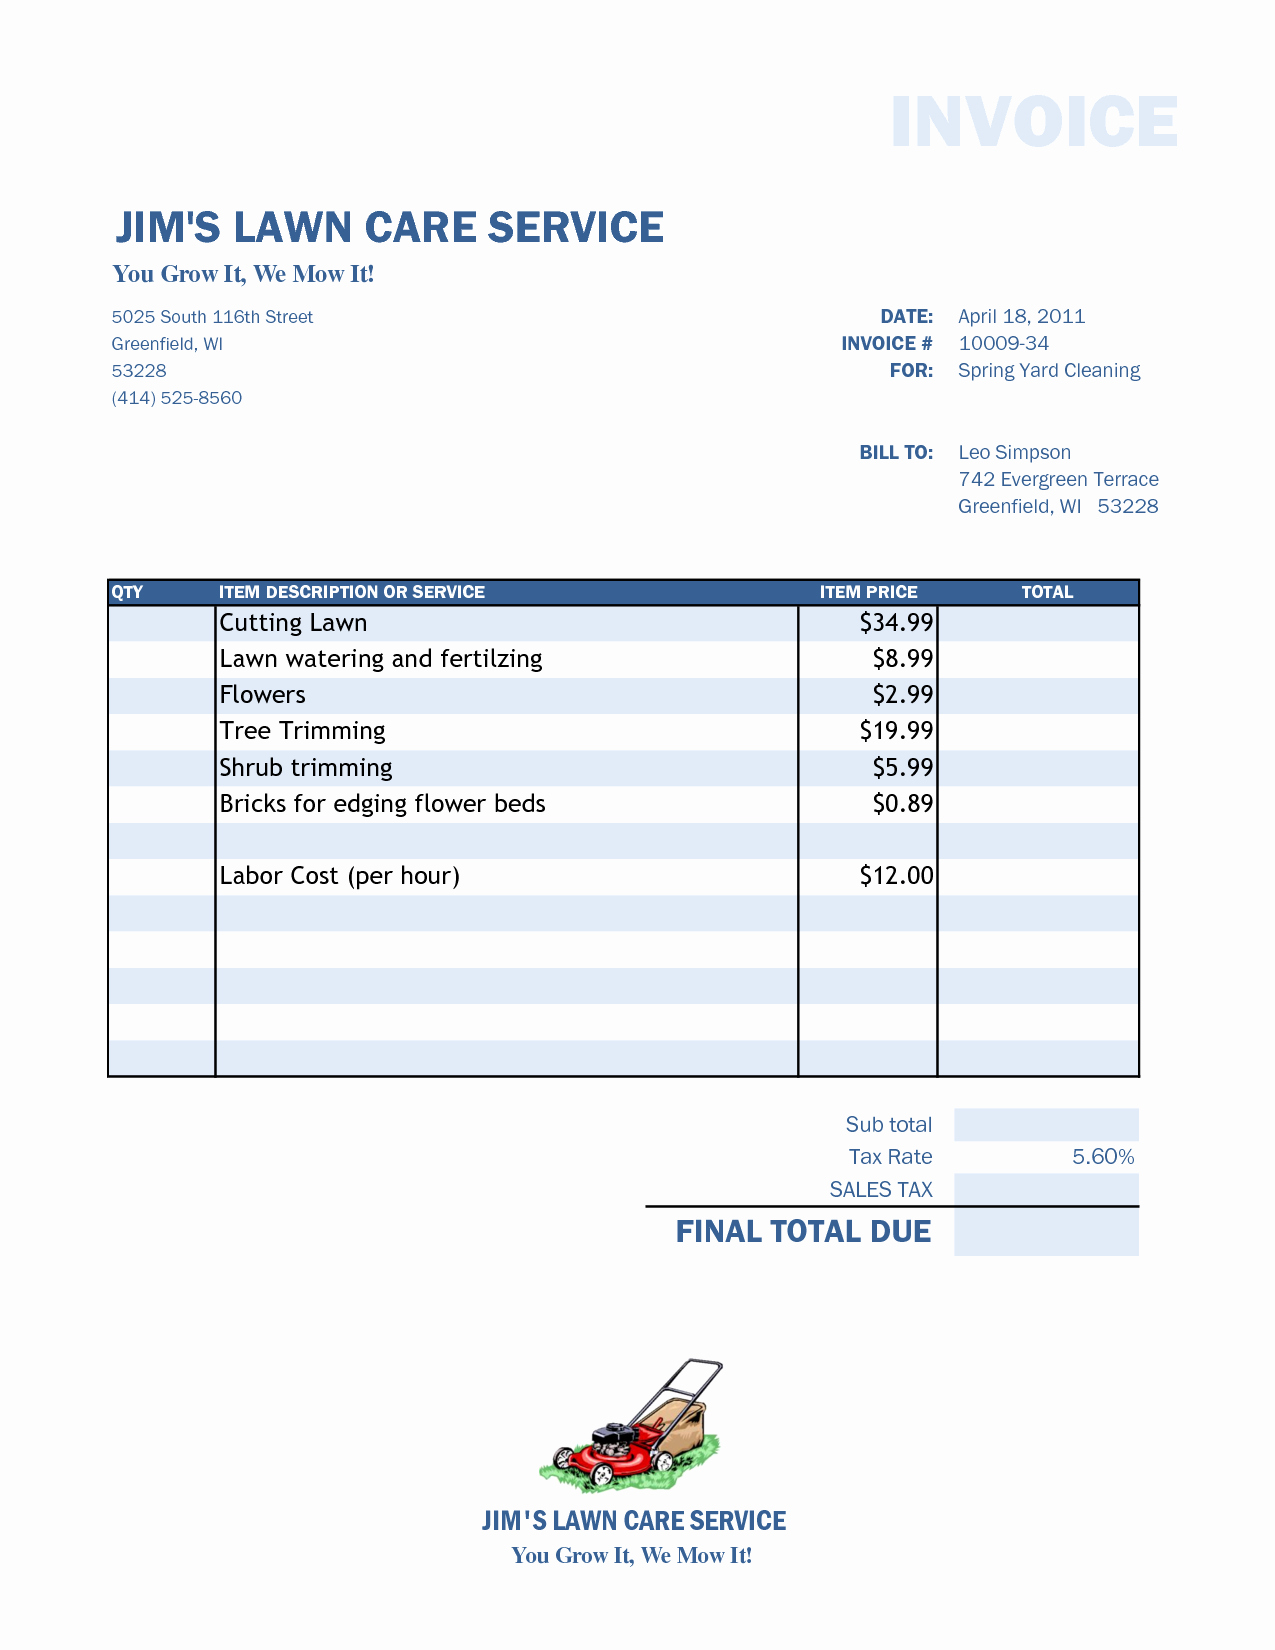 Lawn Service Invoice Template Excel Unique Lawn Care Invoice Template Word